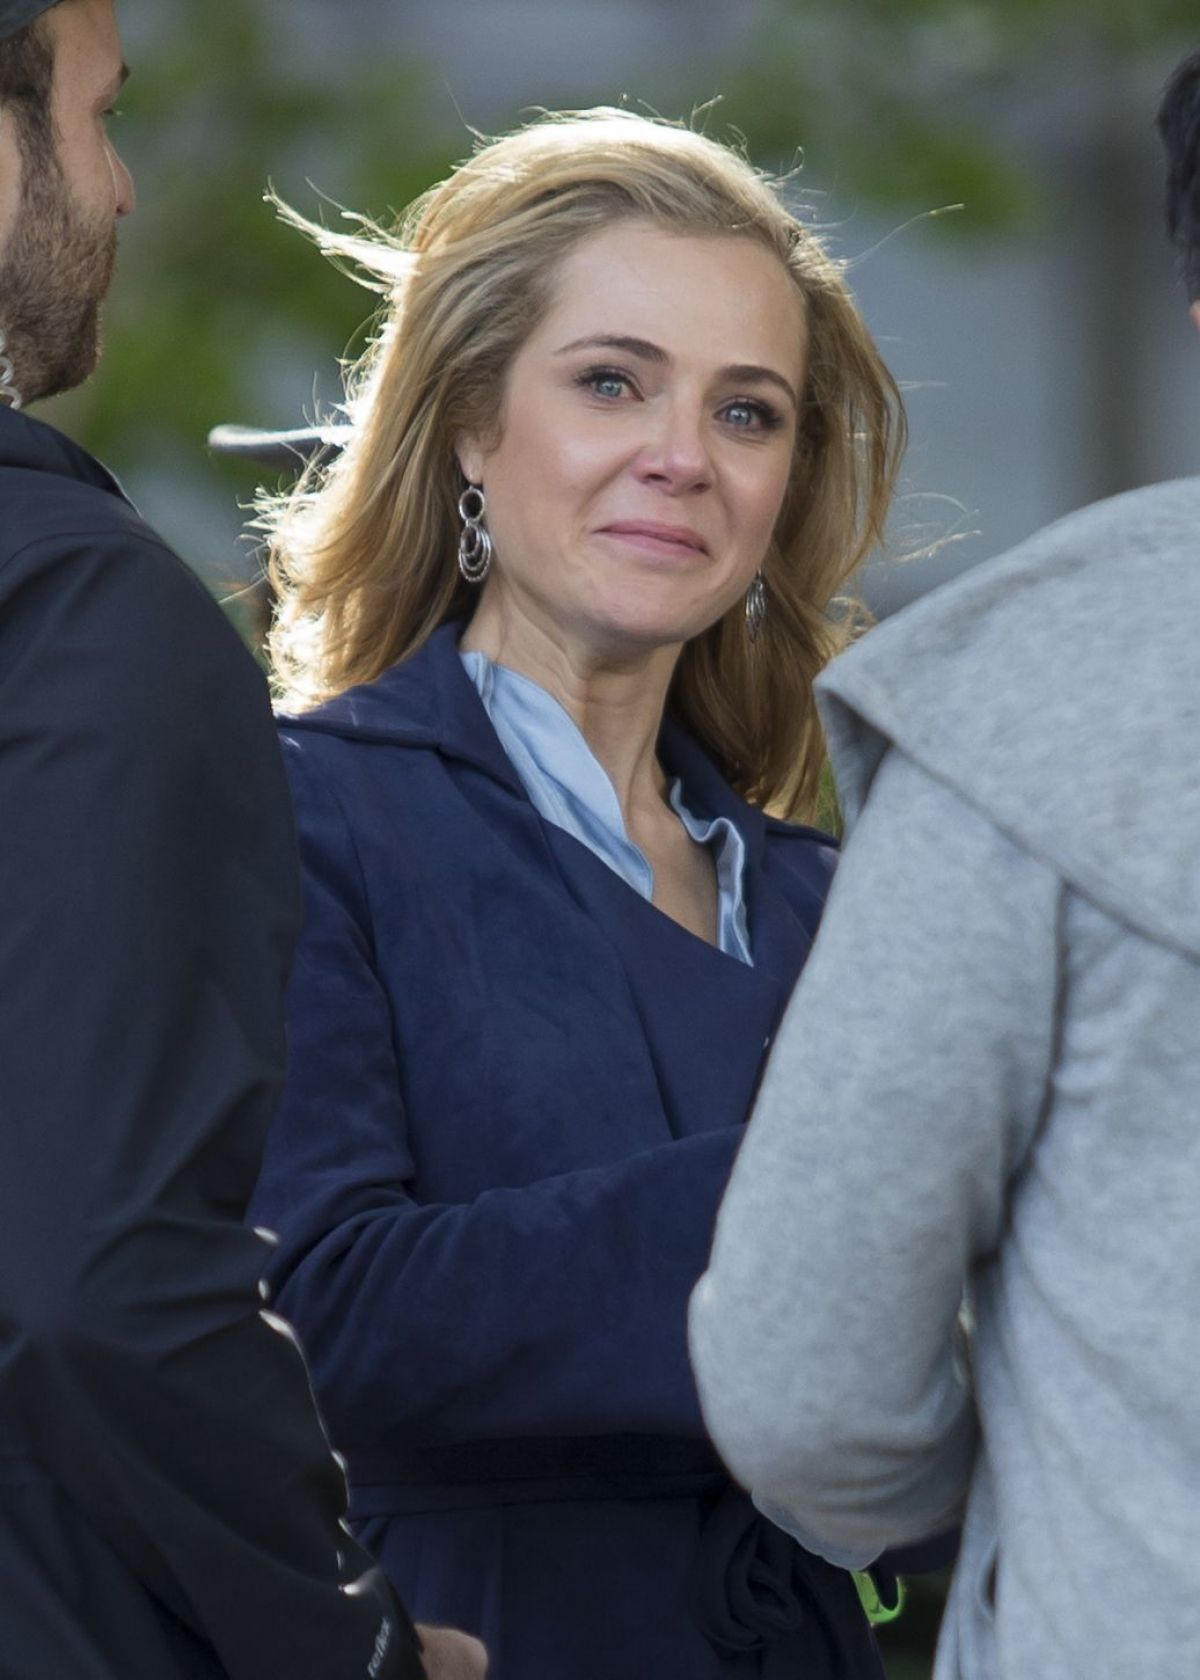 Jessica Marais On The Set Of Love Child In Sydney 03 31 2017